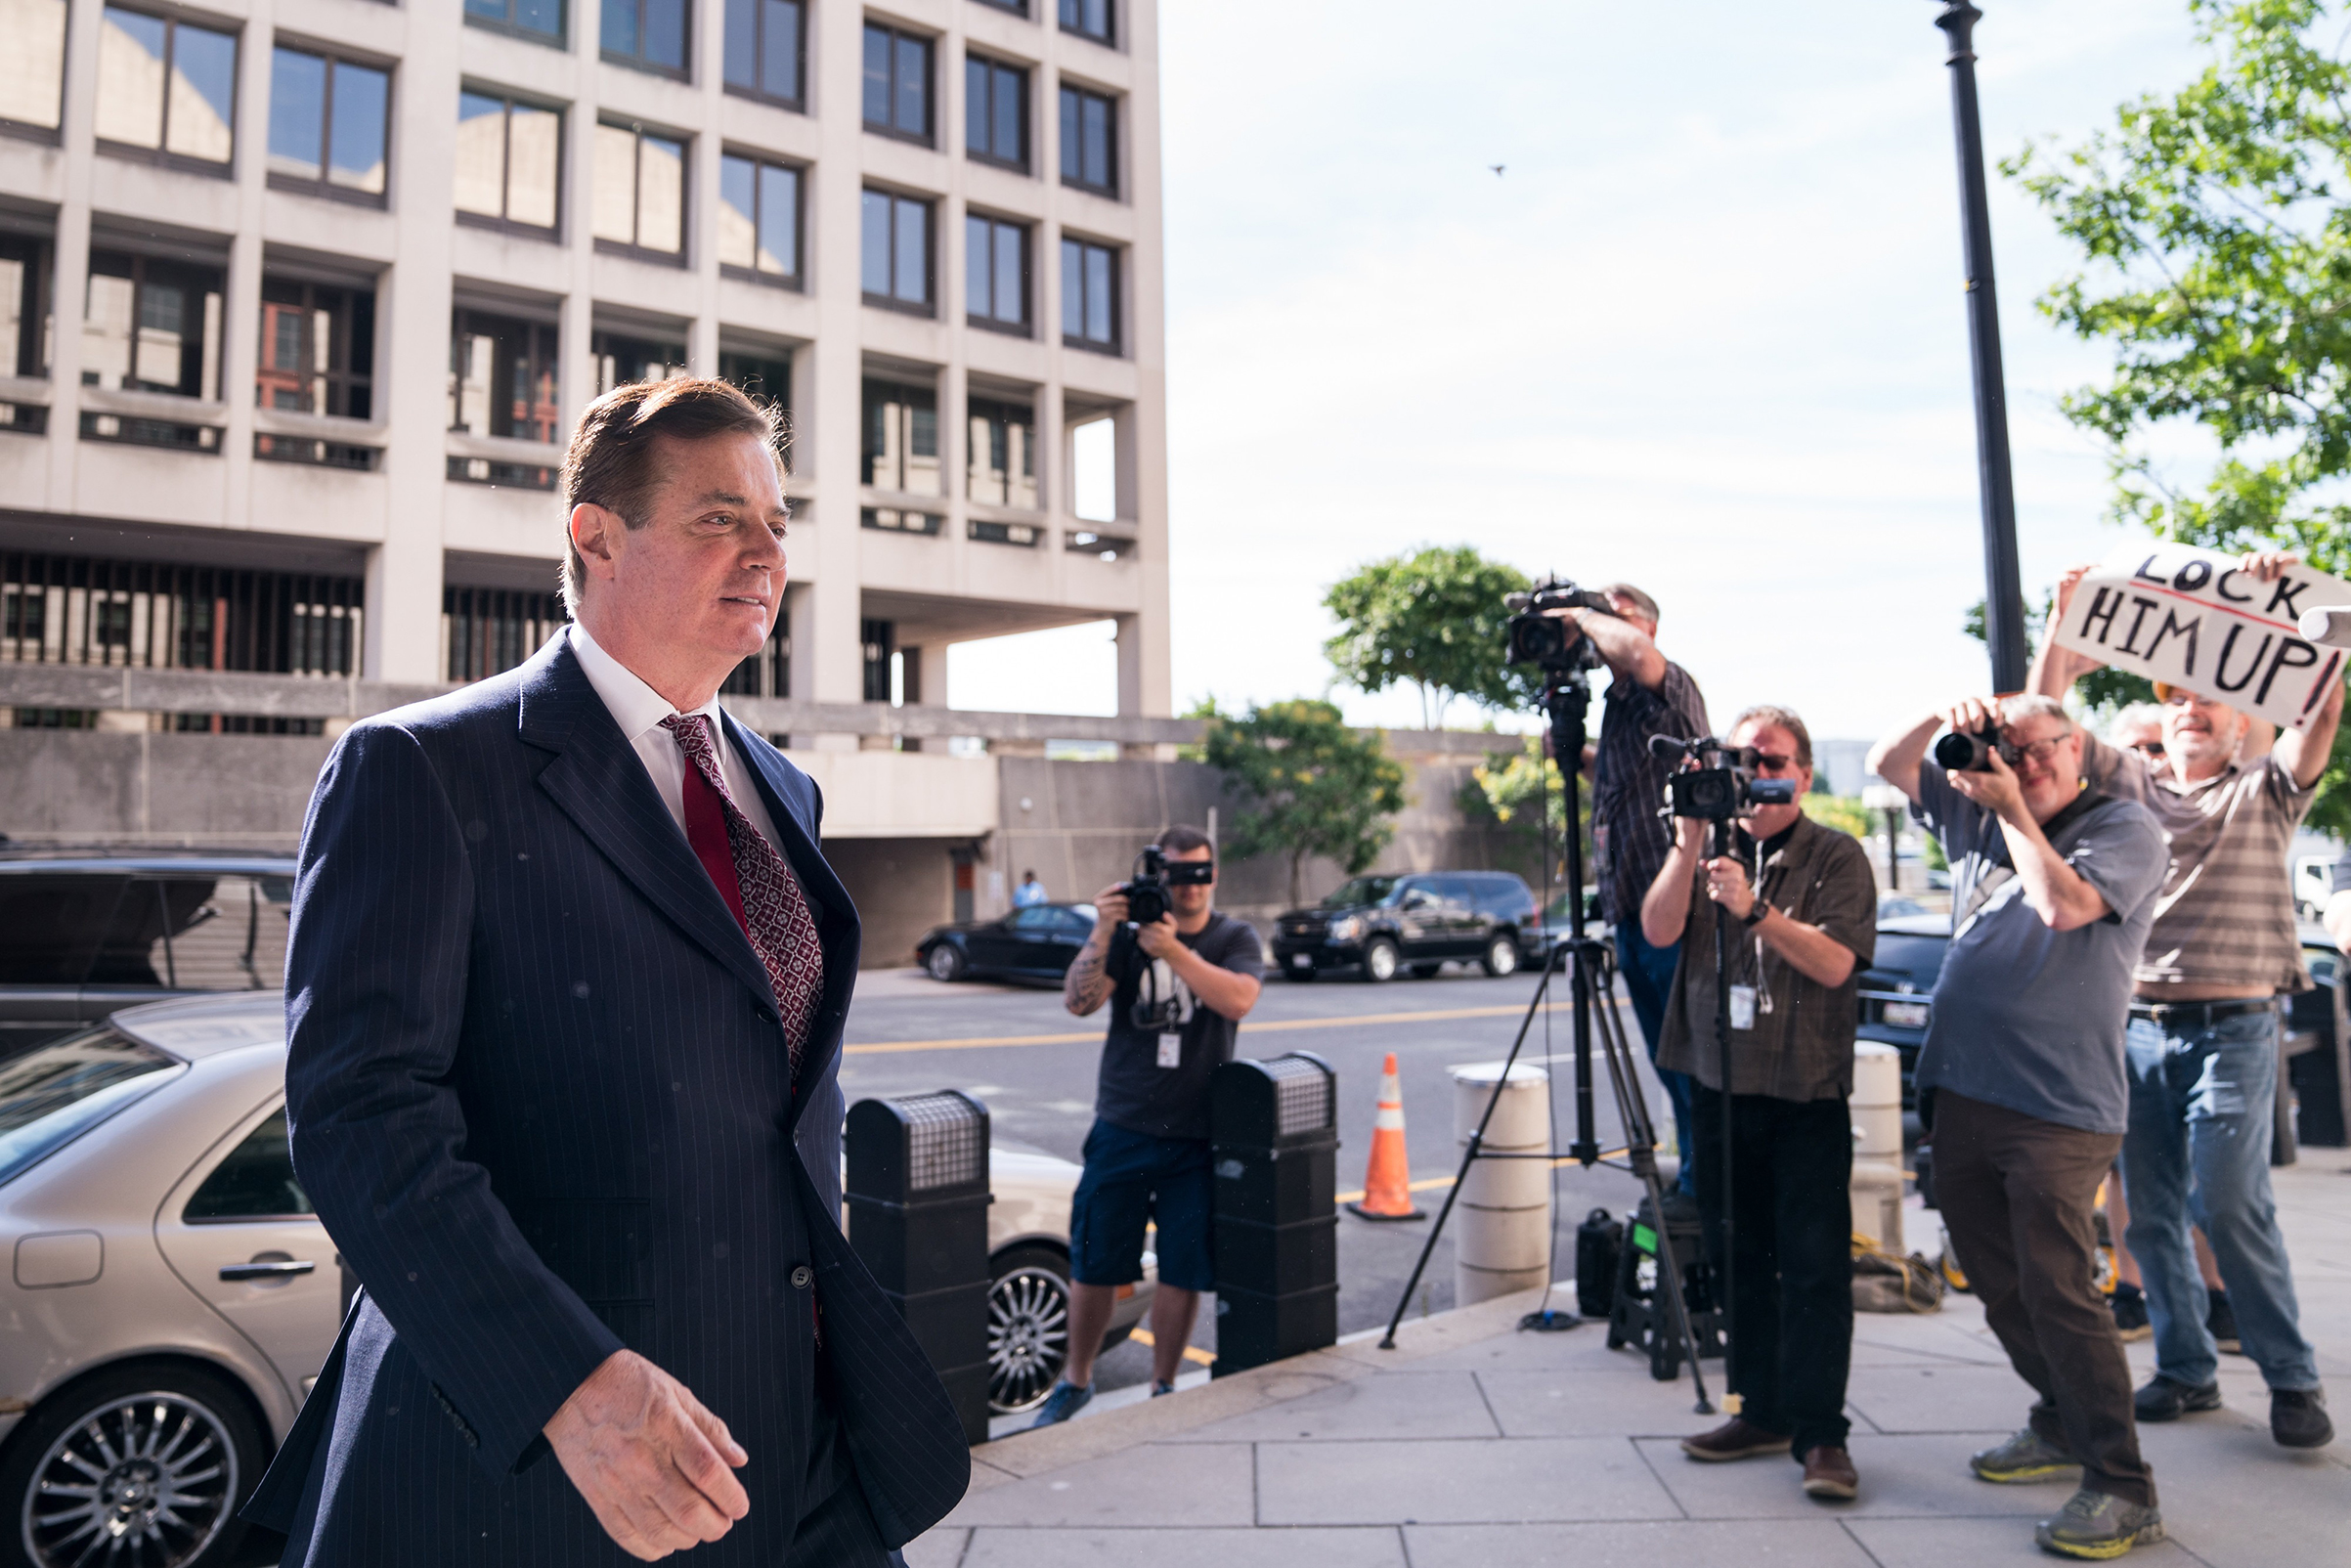 Manafort, outside a federal courthouse in Washington in June, was found guilty of eight counts of bank and tax fraud on Aug. 21